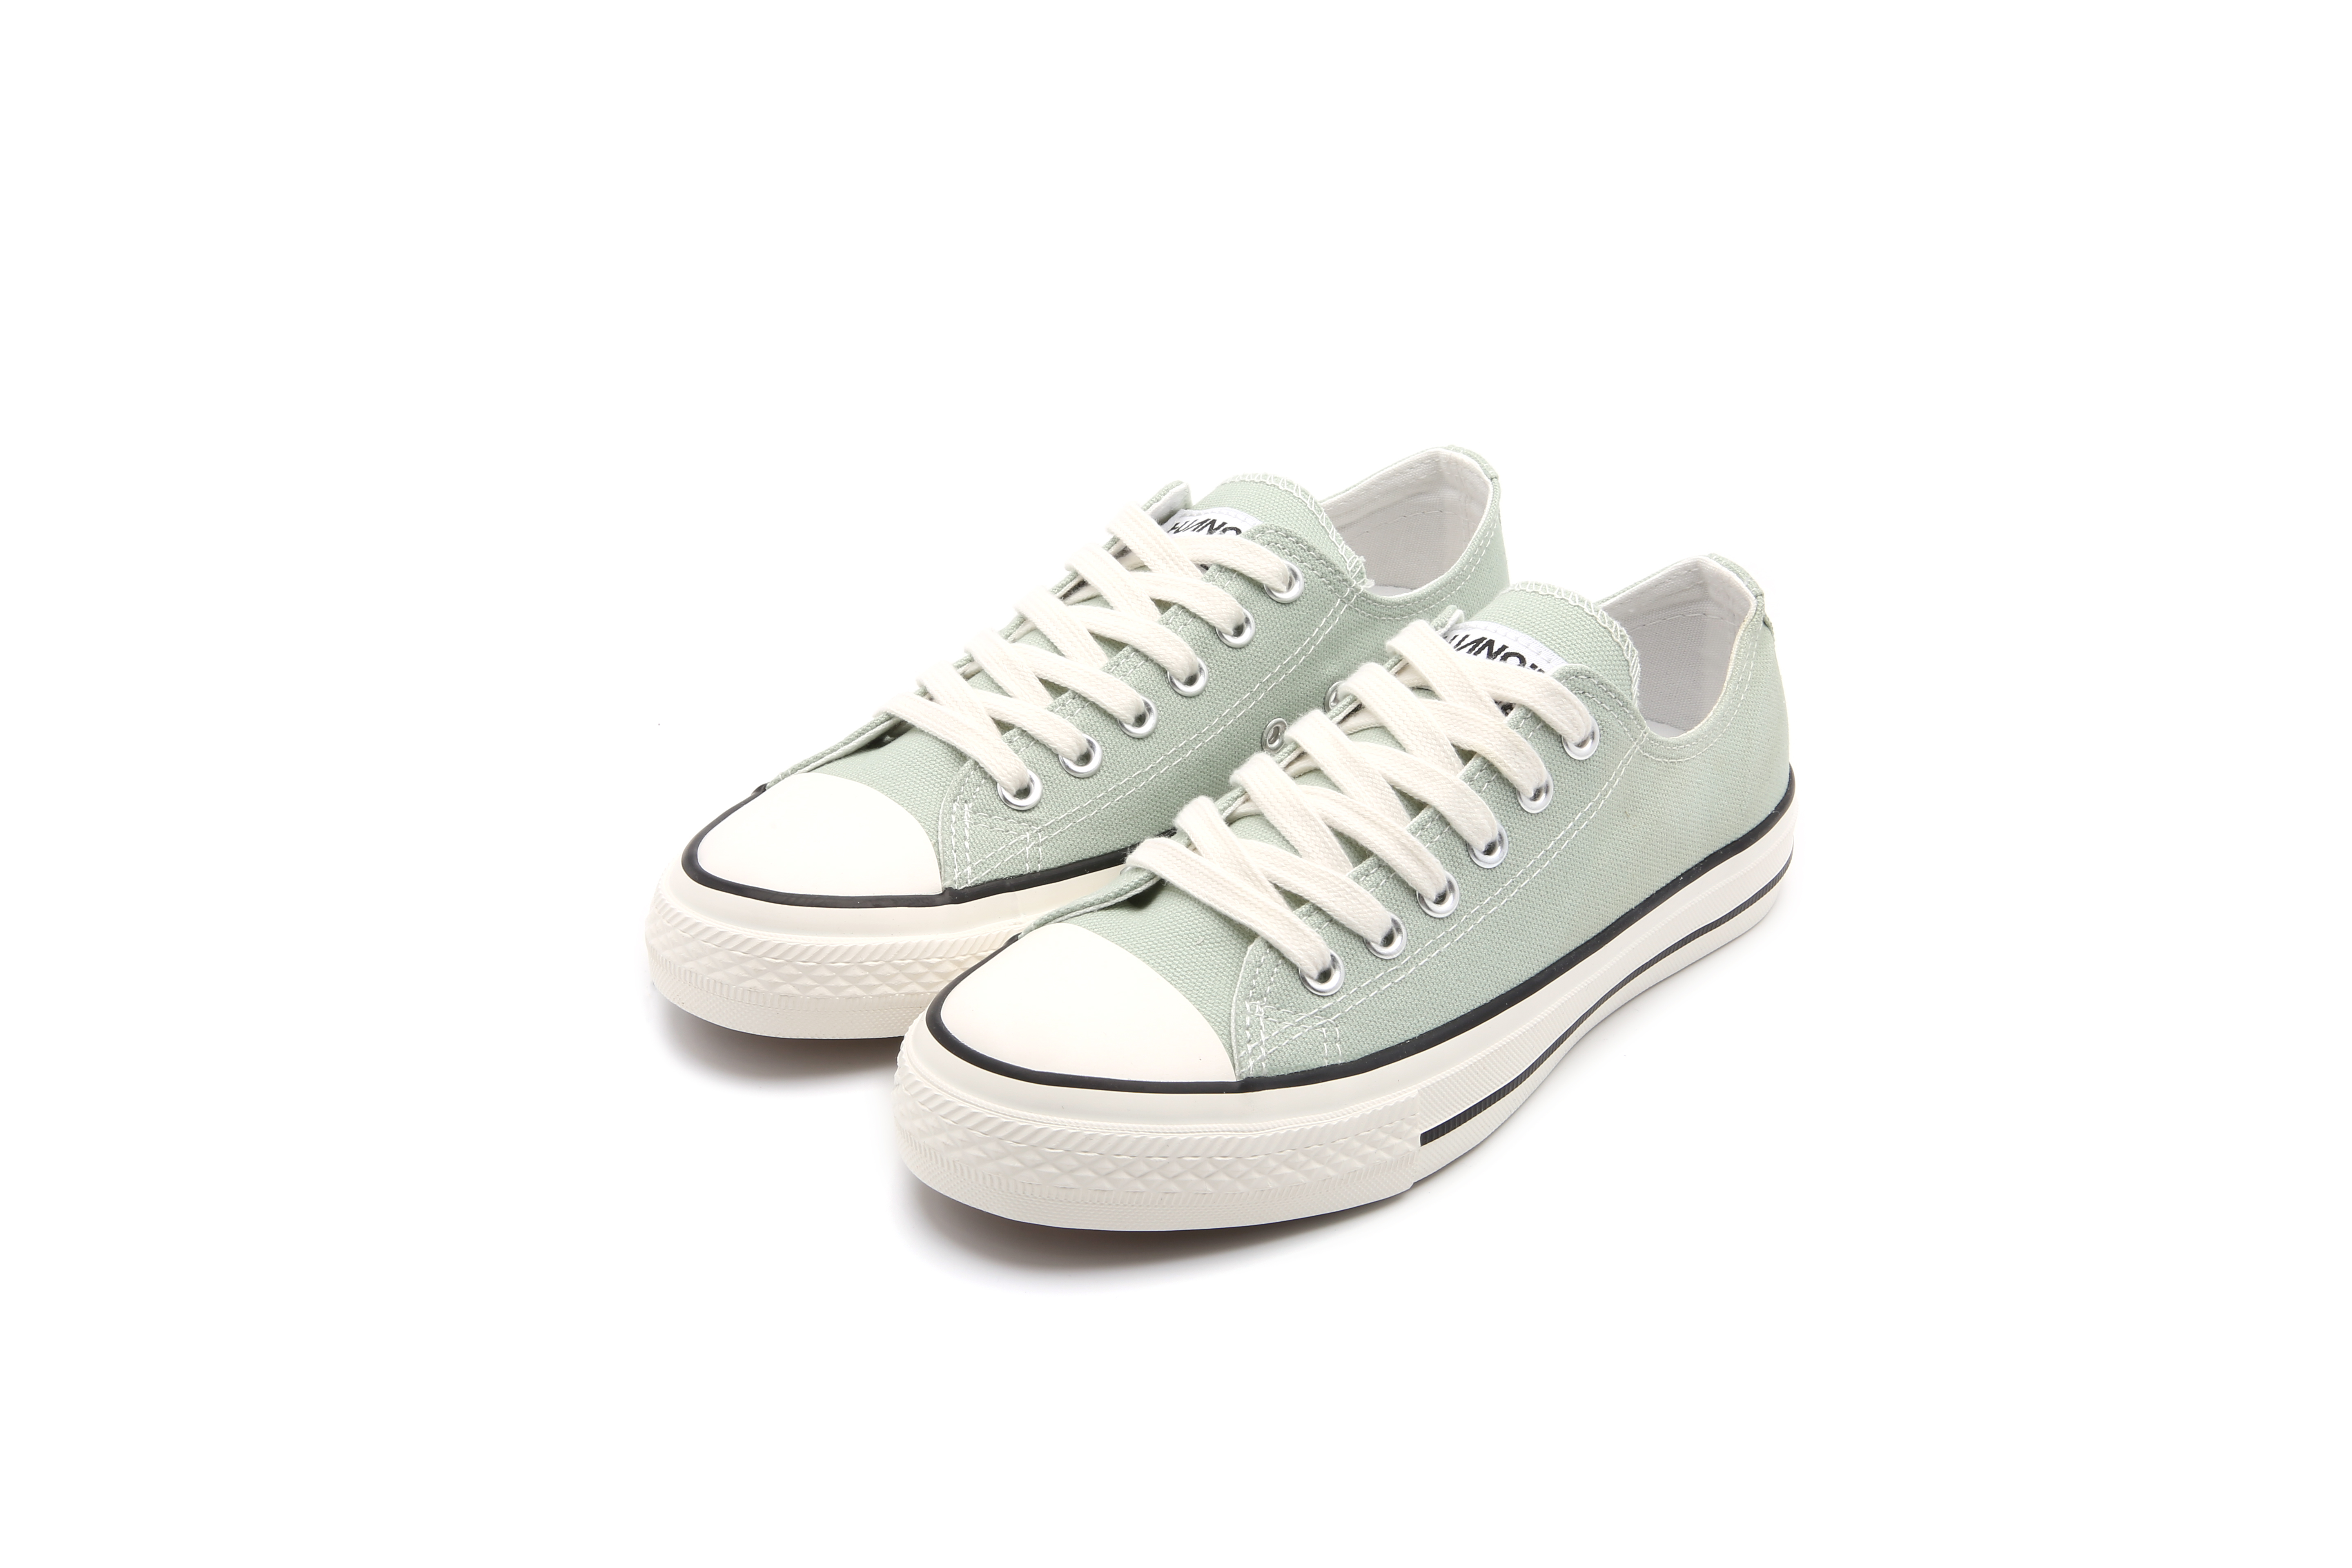 2020 High Quality Manufacturer Custom White Canvas Shoes Women